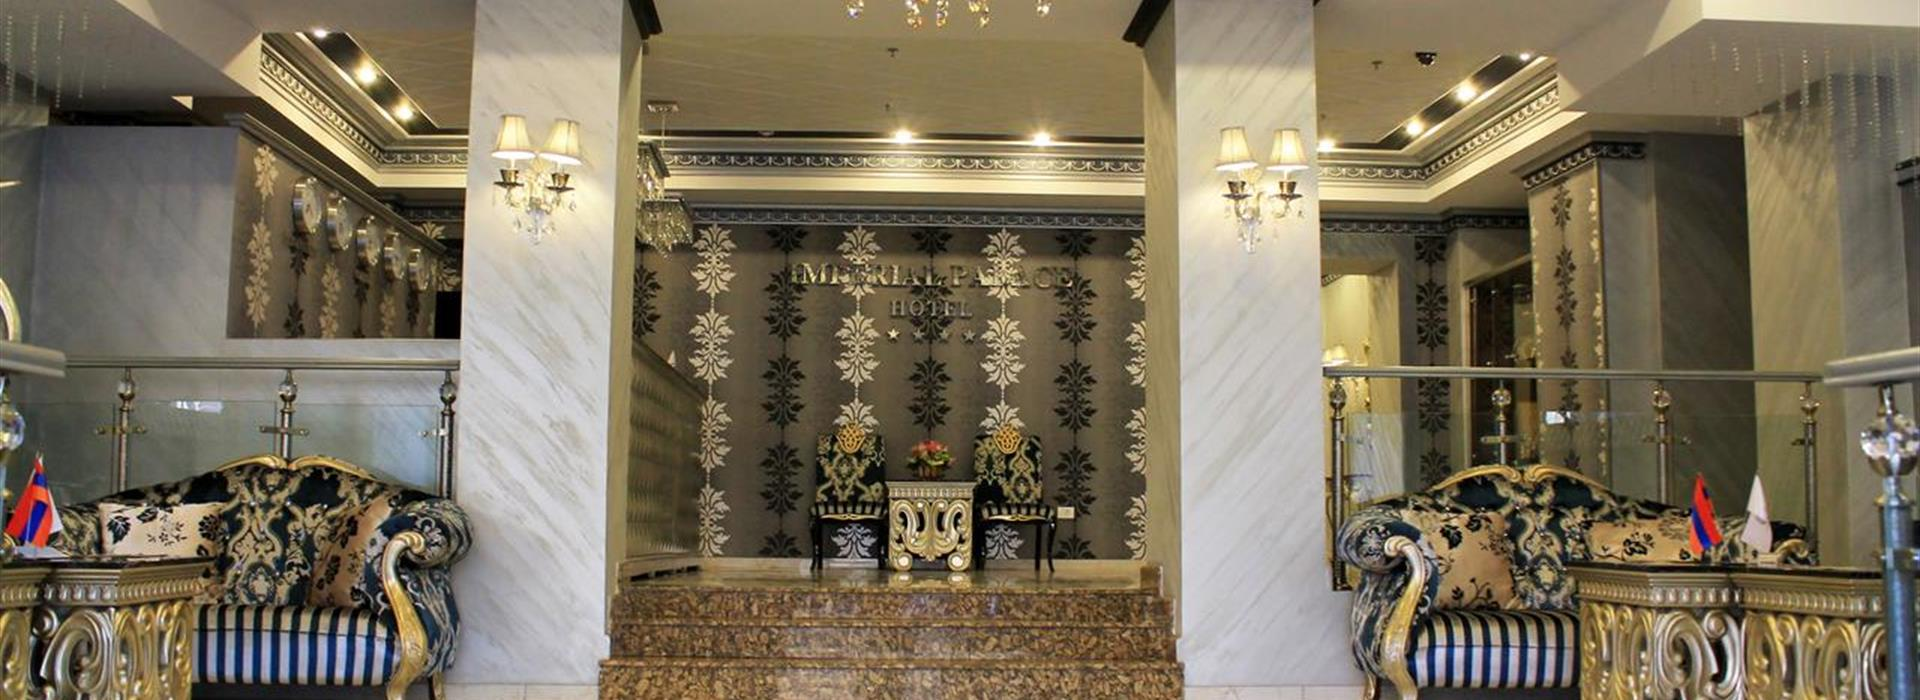 Imperial-Palace-Hotel-Yerevan